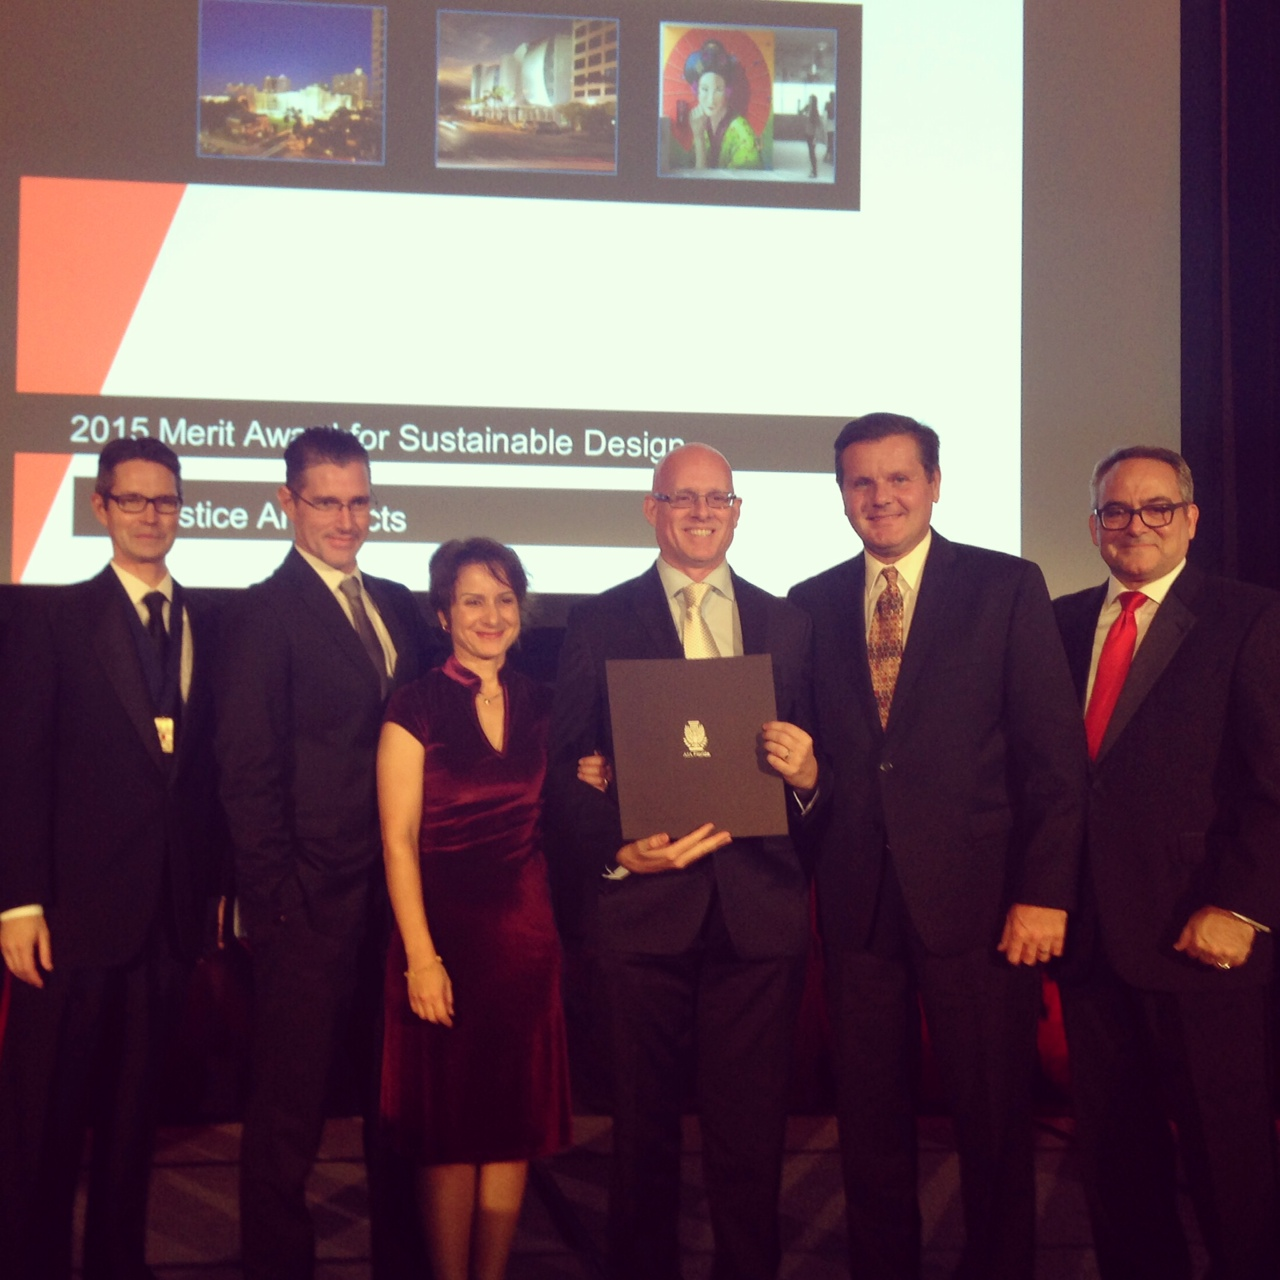 The Solstice Architects team gathered at the Boca Raton Resort to accept the Merit Award.